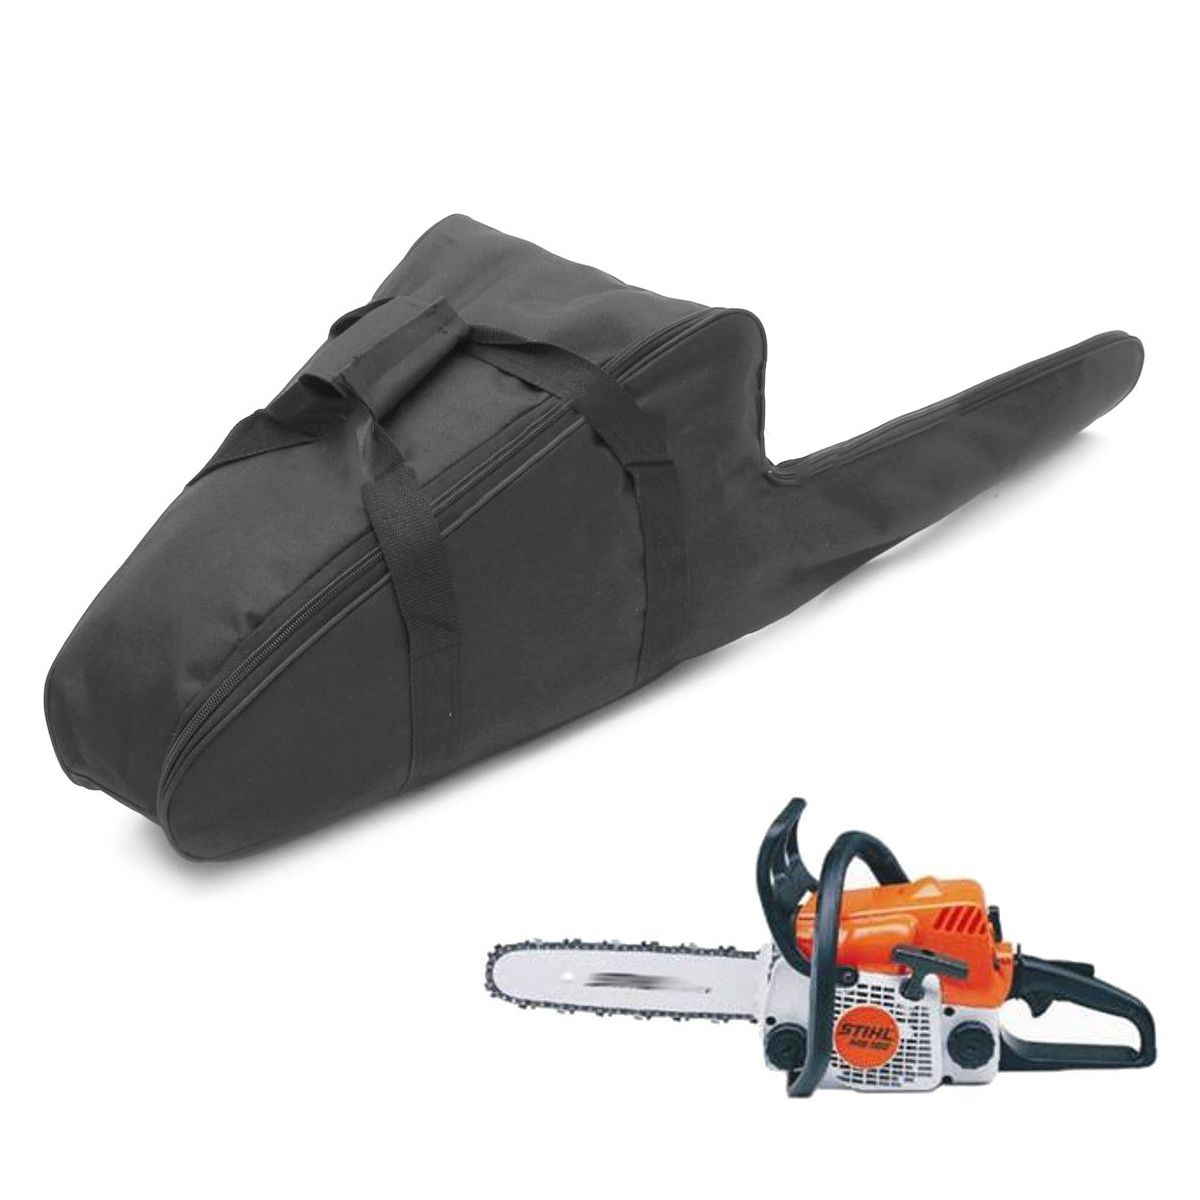 NEW 16 18 20 22 Chainsaw Black Carrying Bag Case Protective Holdall Holder Box for Gaden Chain Saw Carry Storage Tool BagNEW 16 18 20 22 Chainsaw Black Carrying Bag Case Protective Holdall Holder Box for Gaden Chain Saw Carry Storage Tool Bag